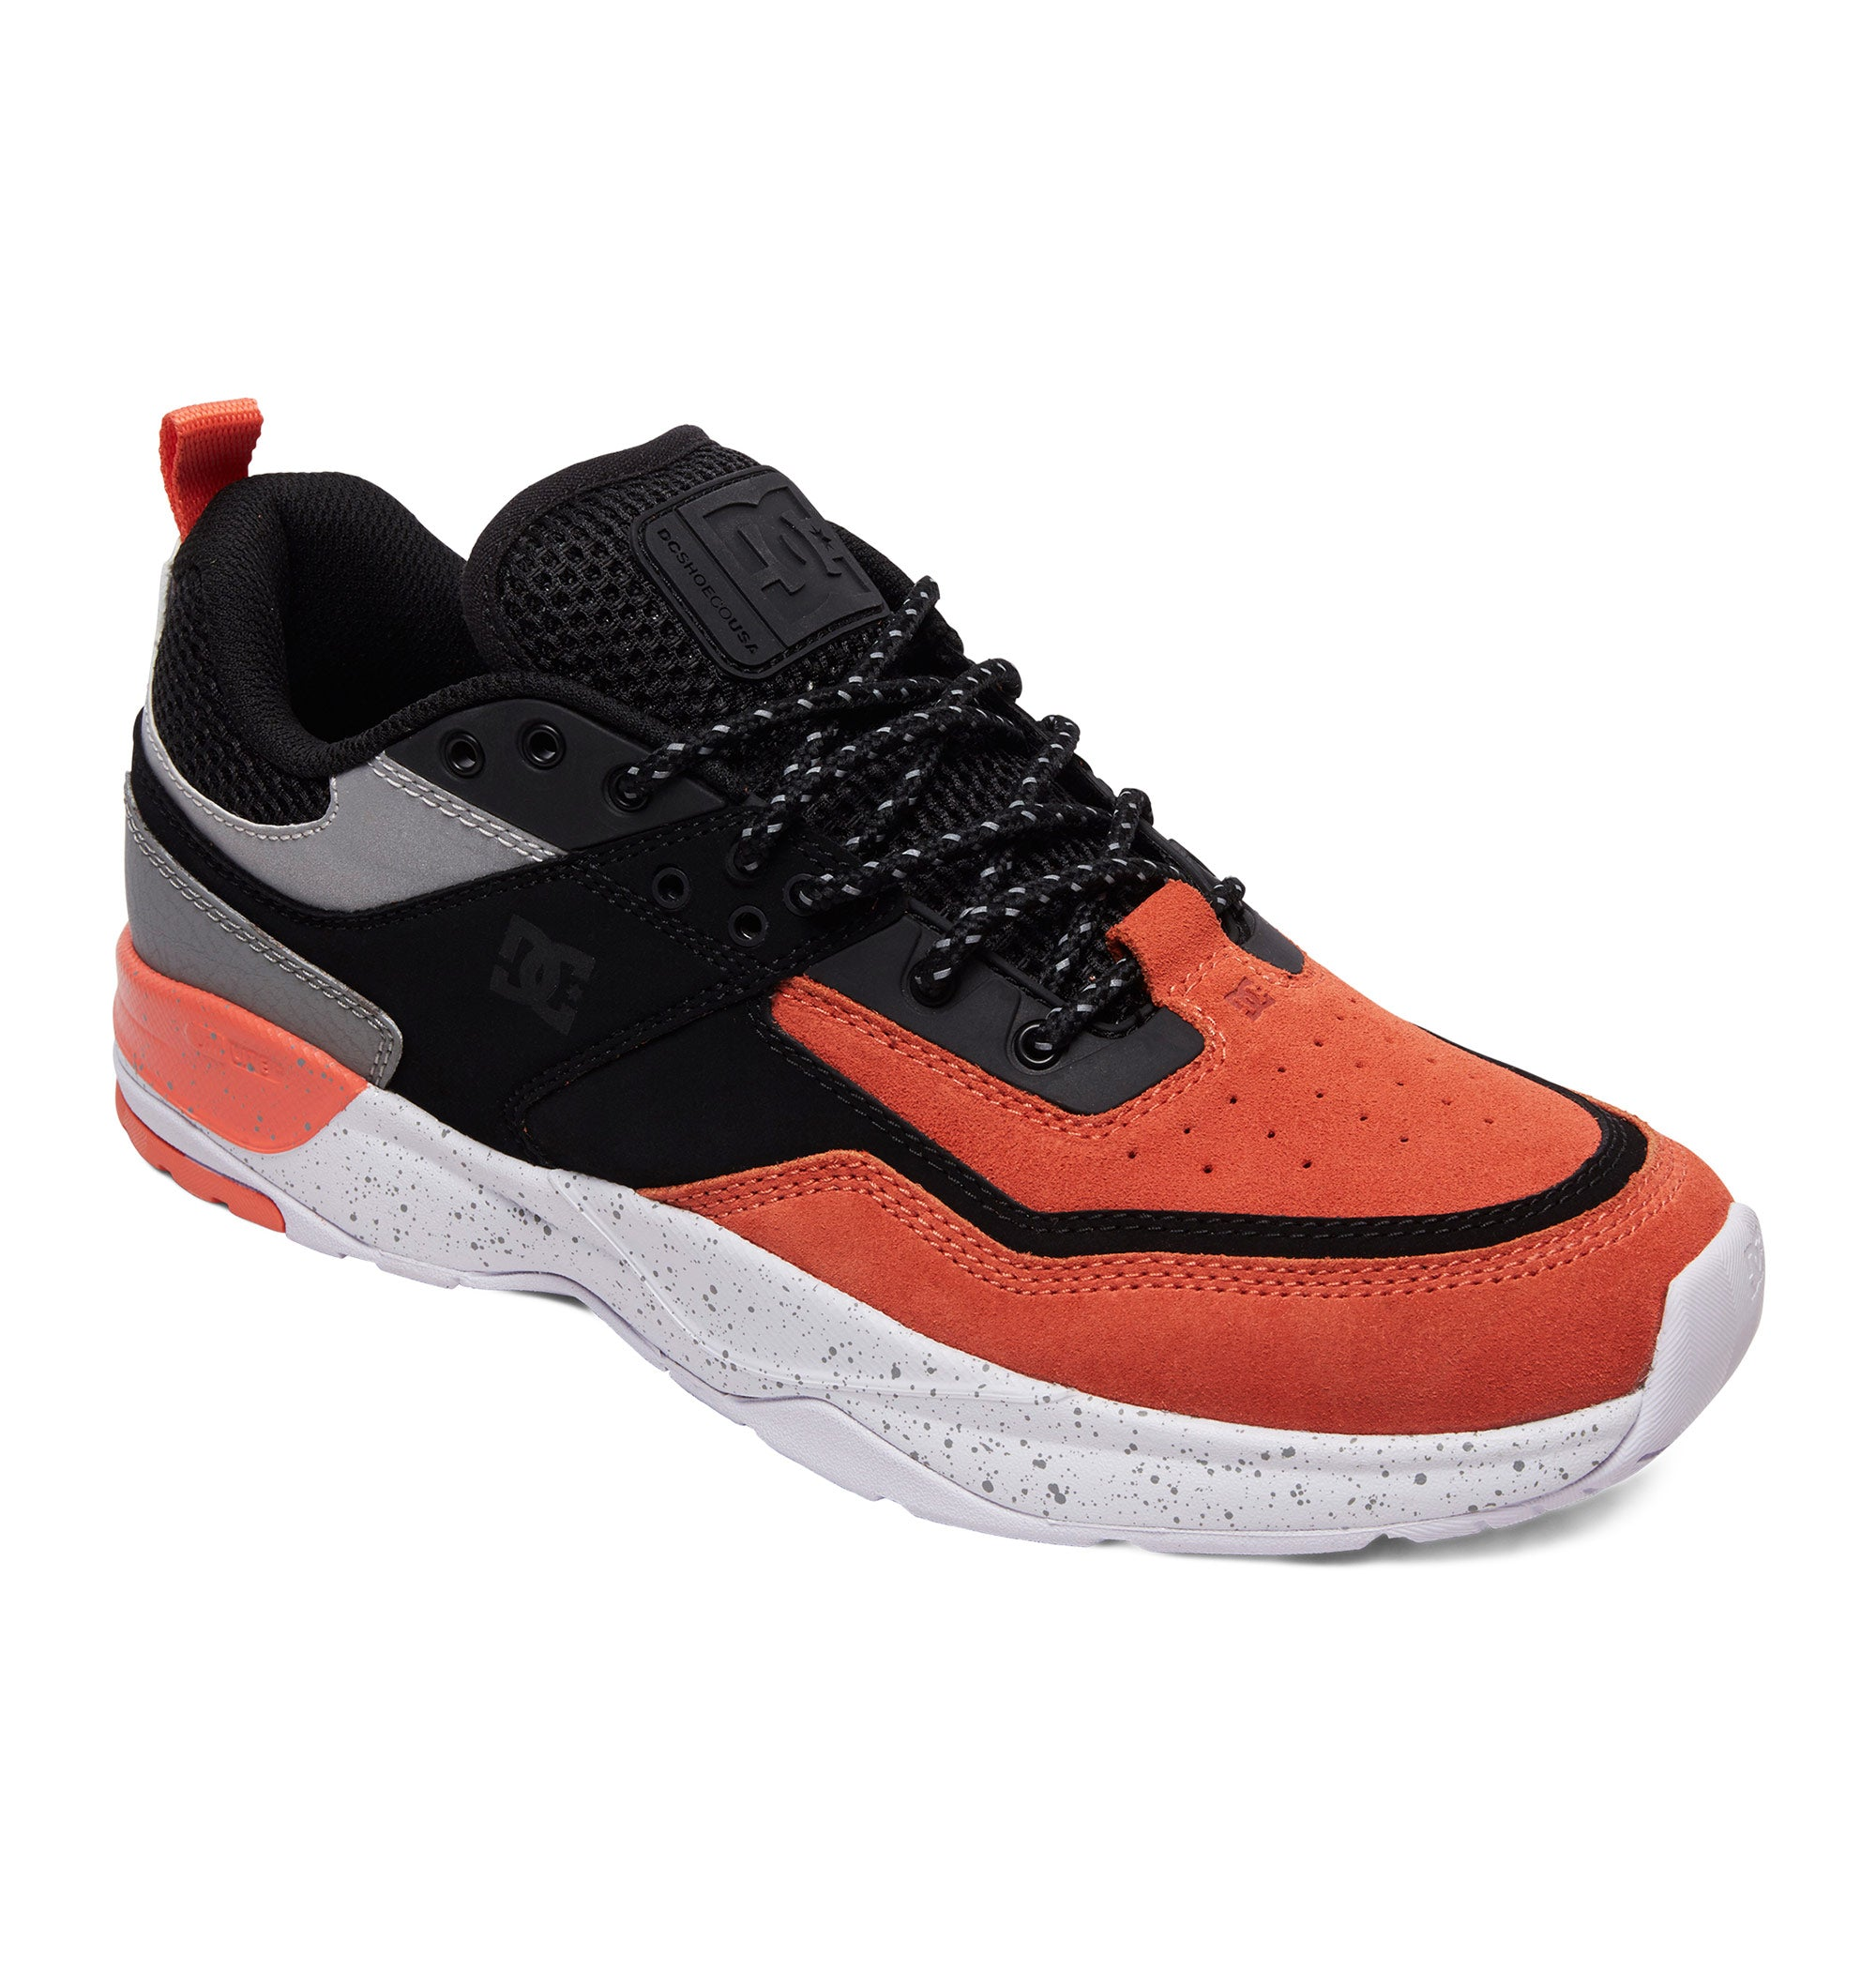 DC E.Tribeka SE Shoe Mens - Black/Orange